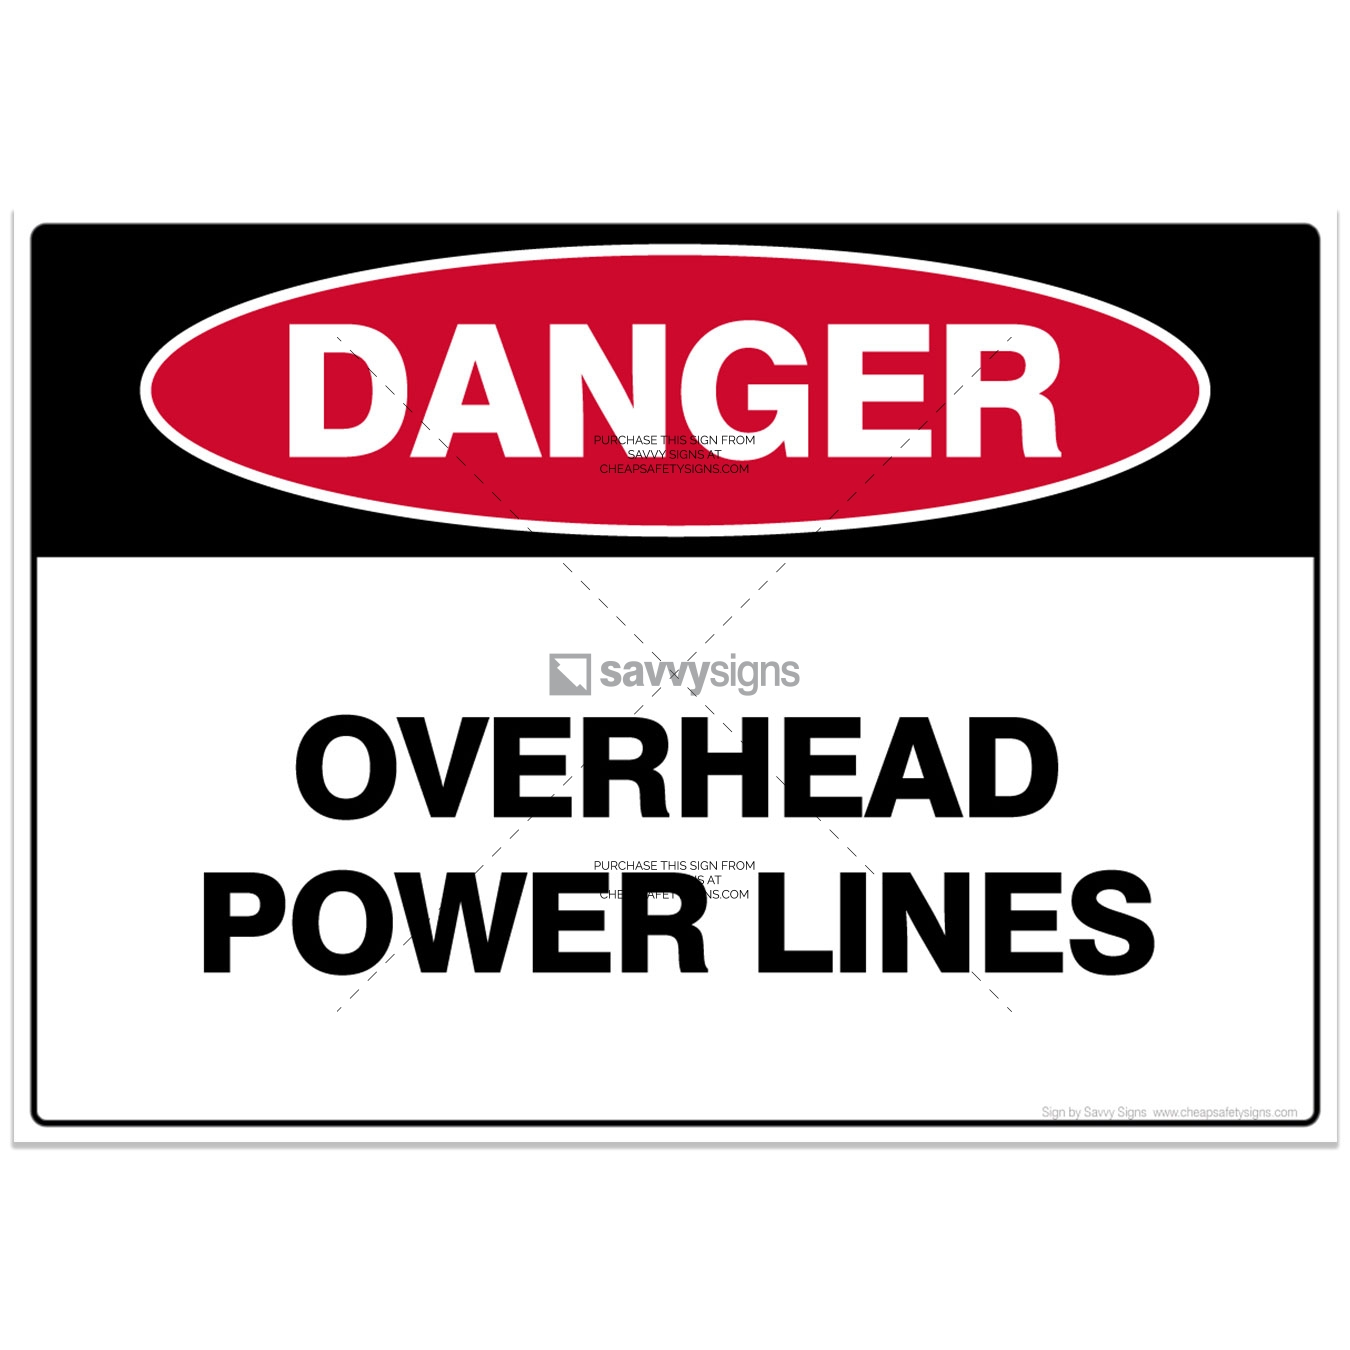 SSDAN3062-DANGER-Workplace-Safety-Signs_Savvy-Signs_v4.1